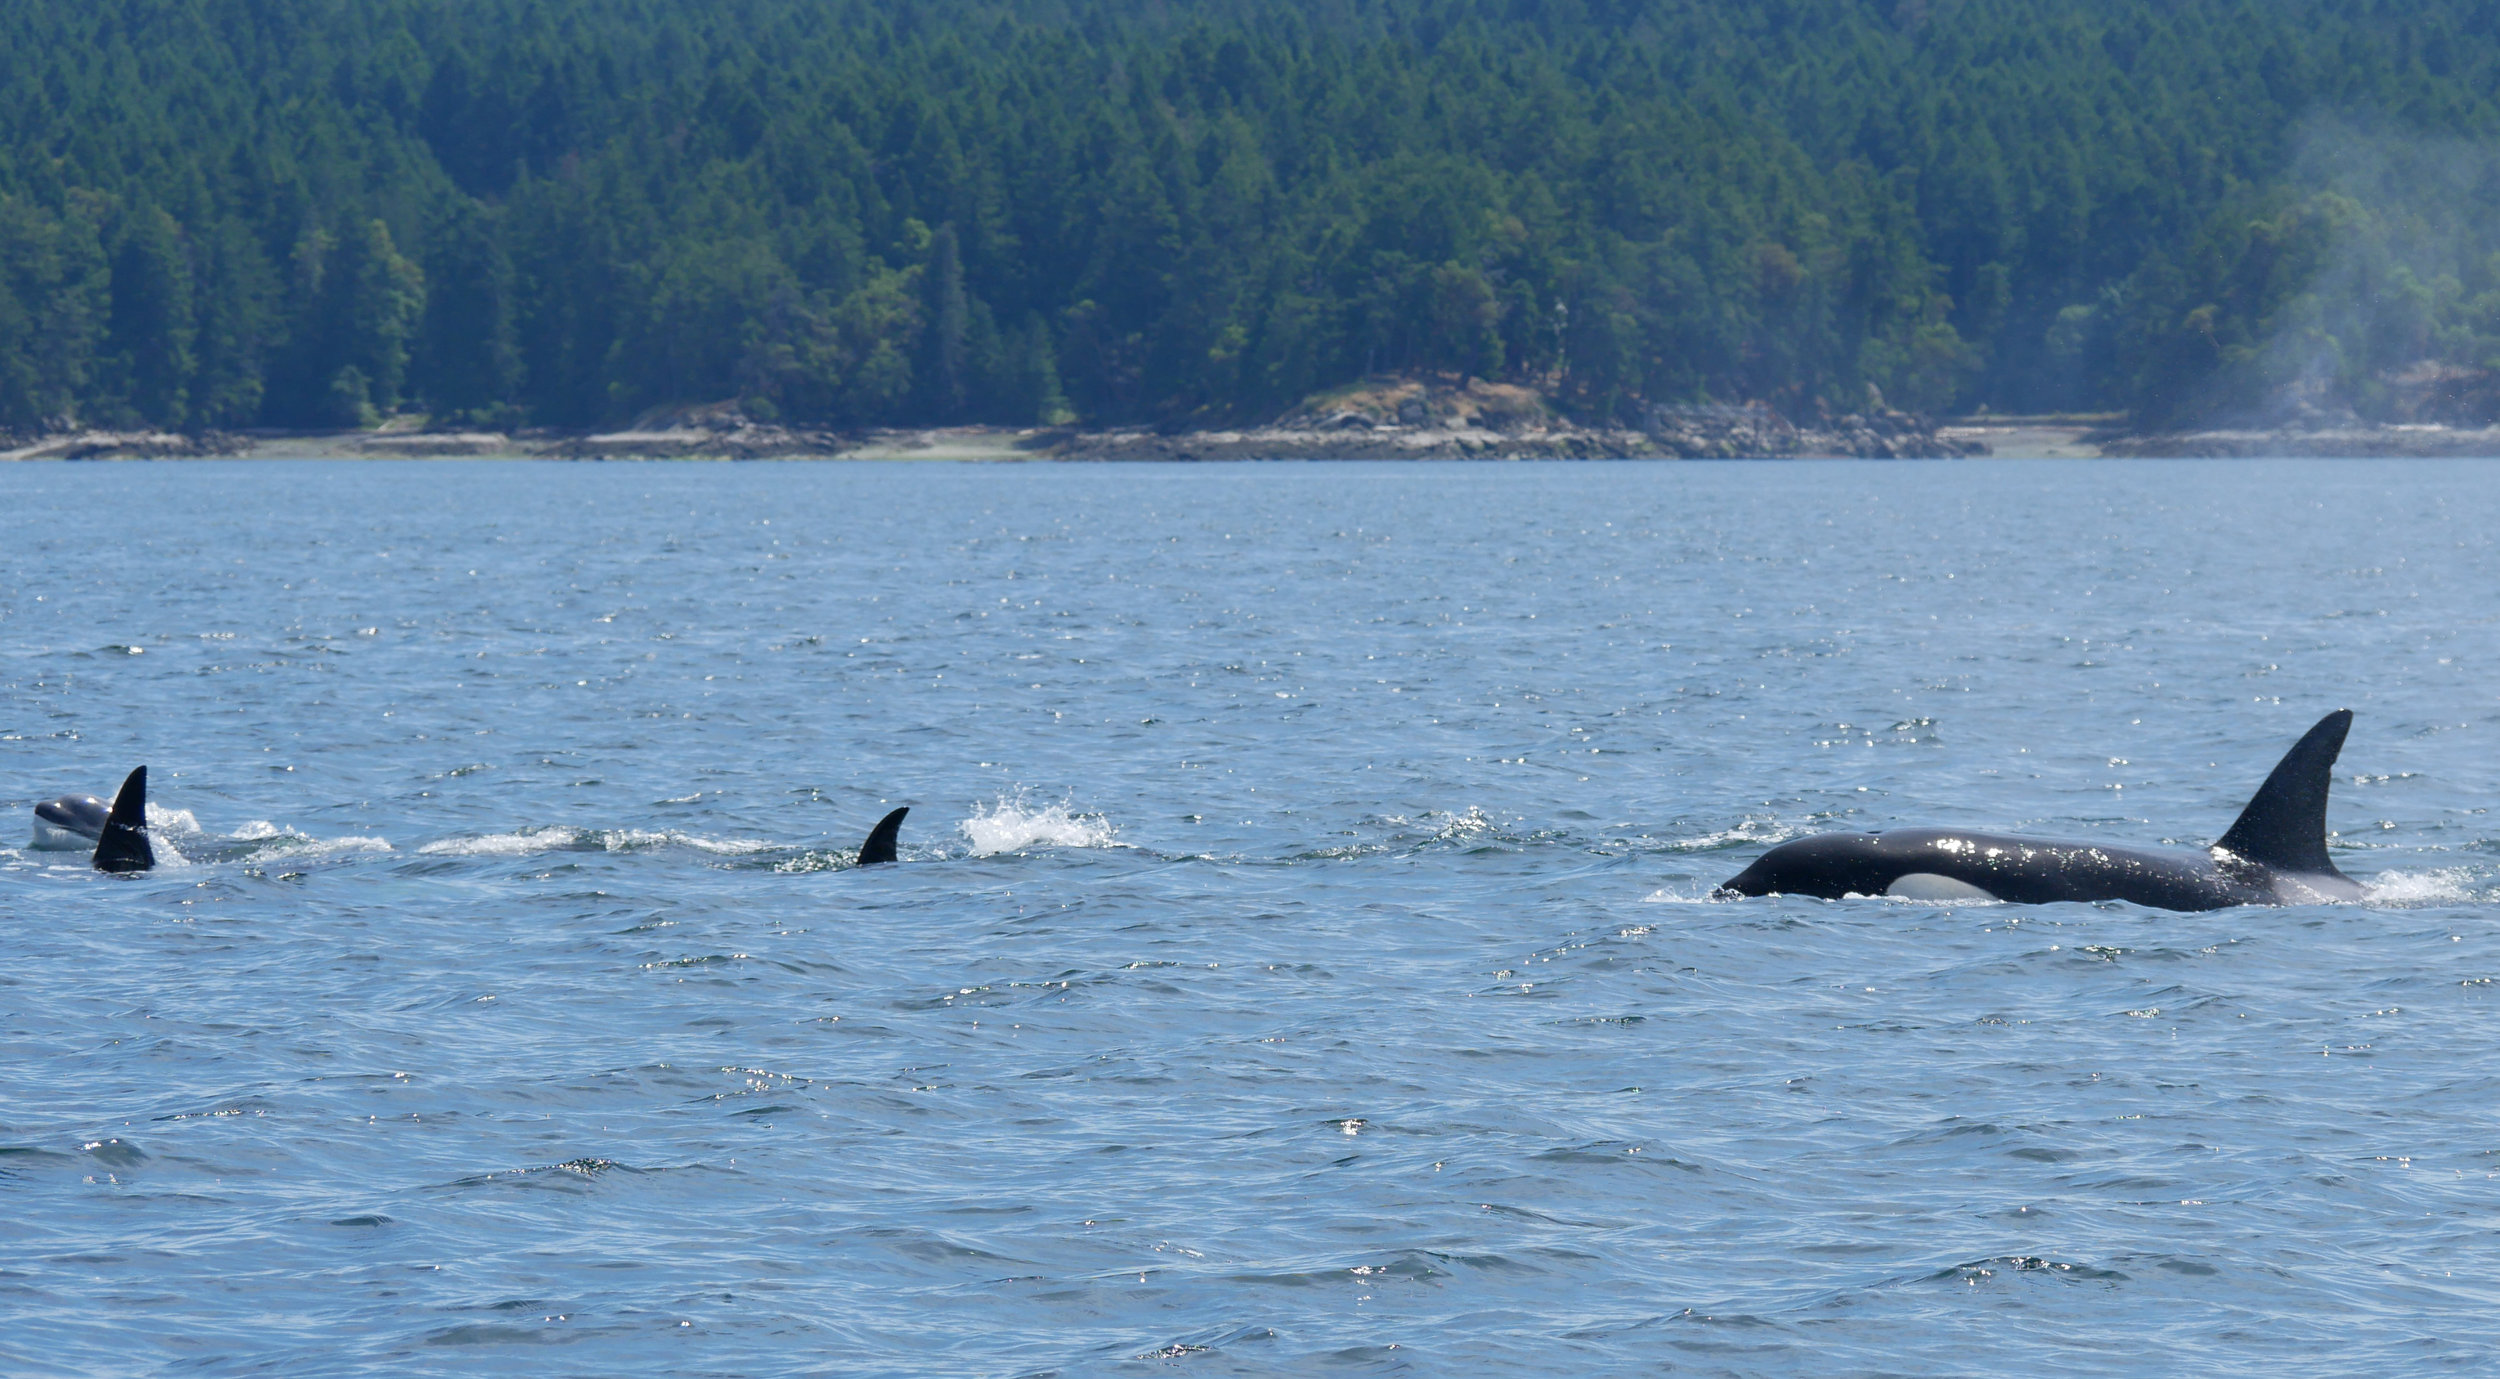 Four members of the pod surfacing together! Photo by Val Watson.